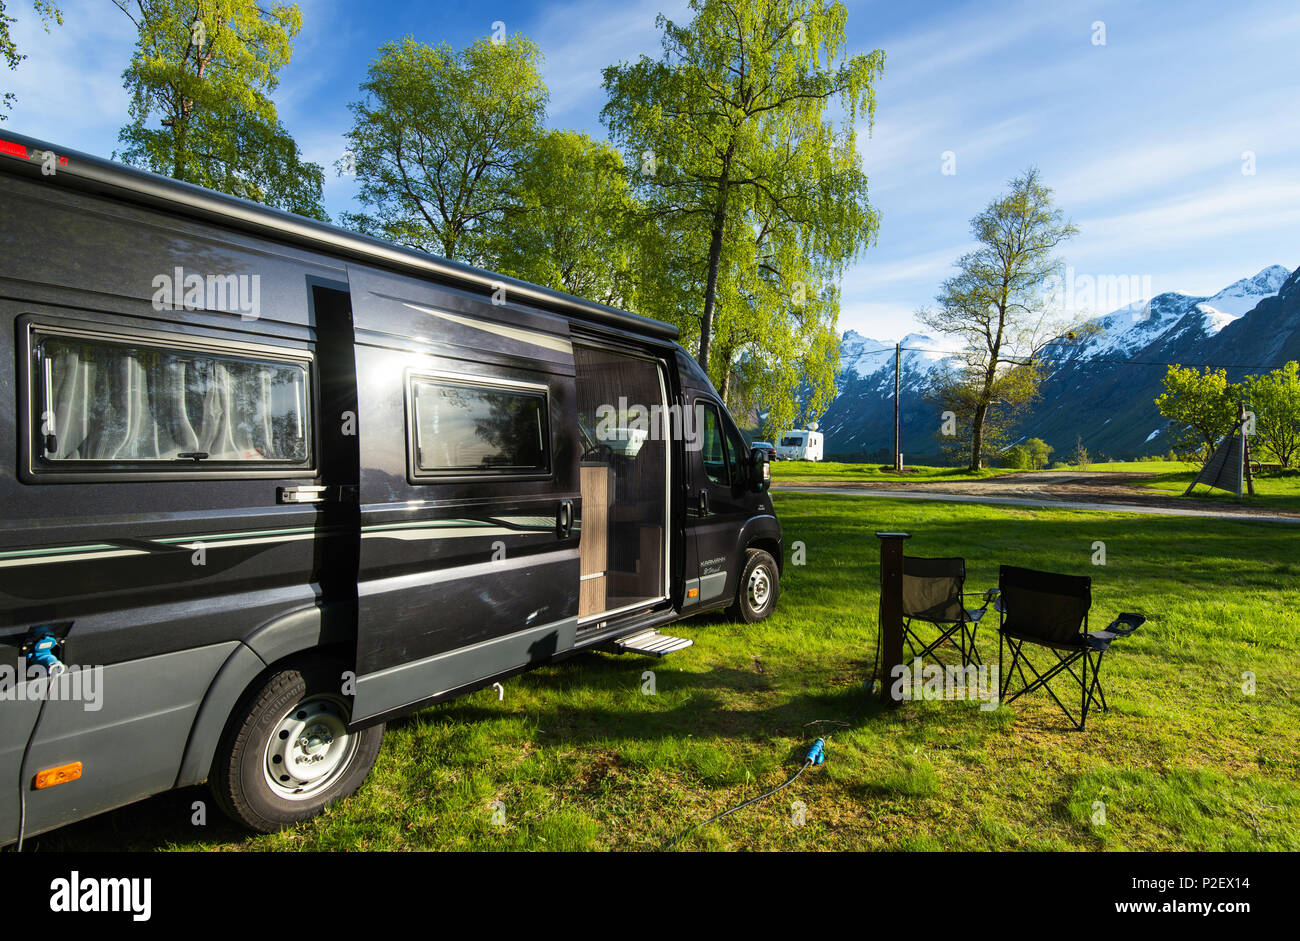 Printemps, le campeur, Wohnmobil, camping, Romsdal, Norvège, Europe Photo Stock